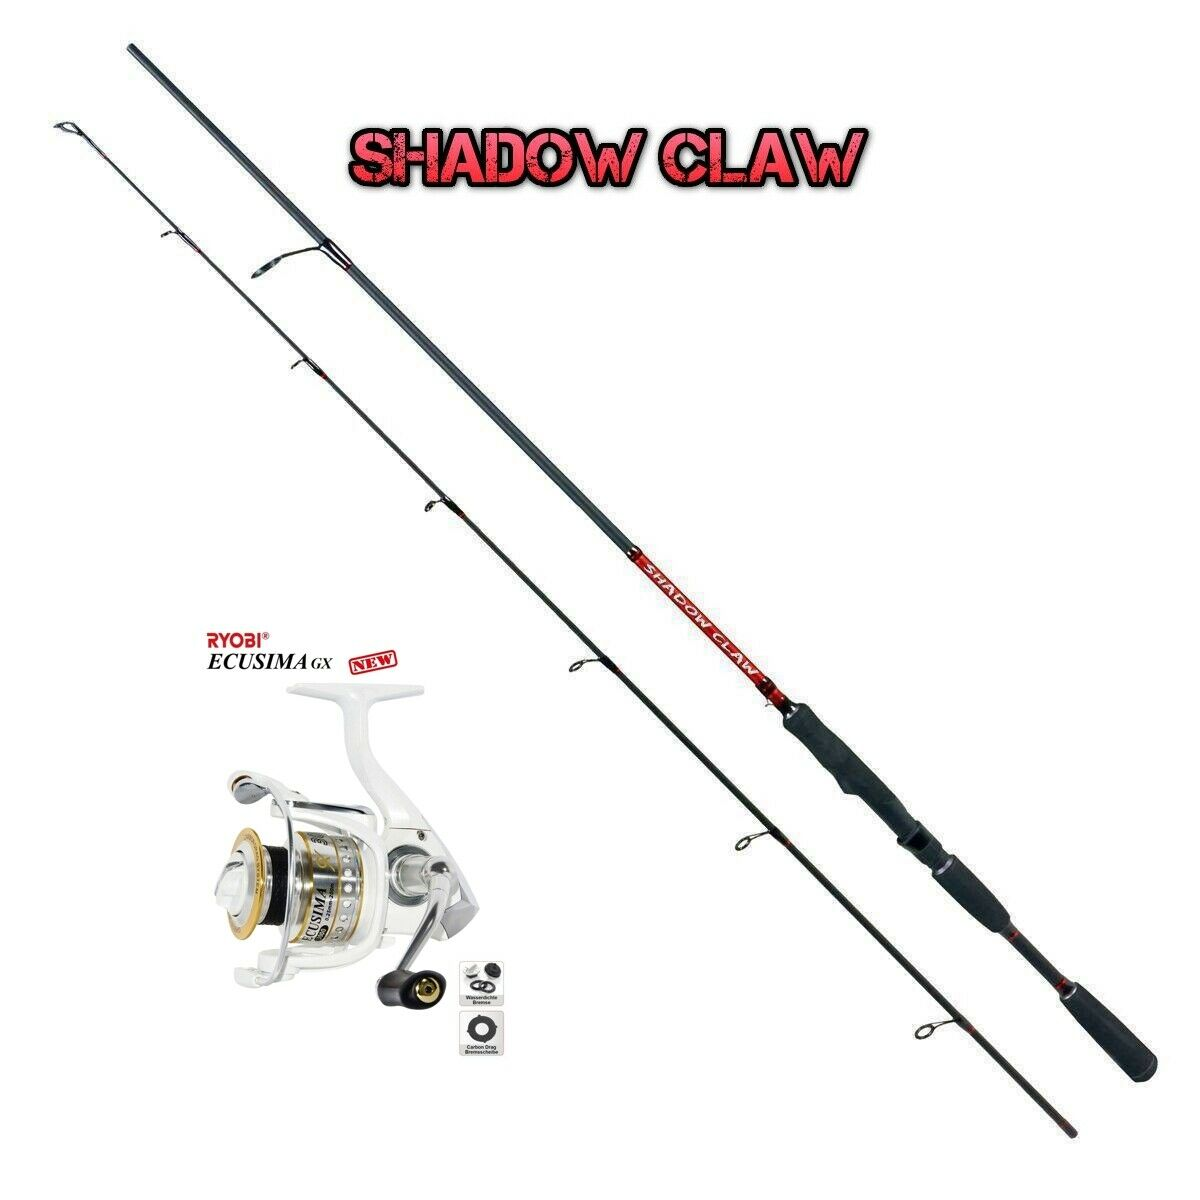 Top Spin Set Ryobi Ecusima GX 4000  Shadow Claw 2,70m 2060g